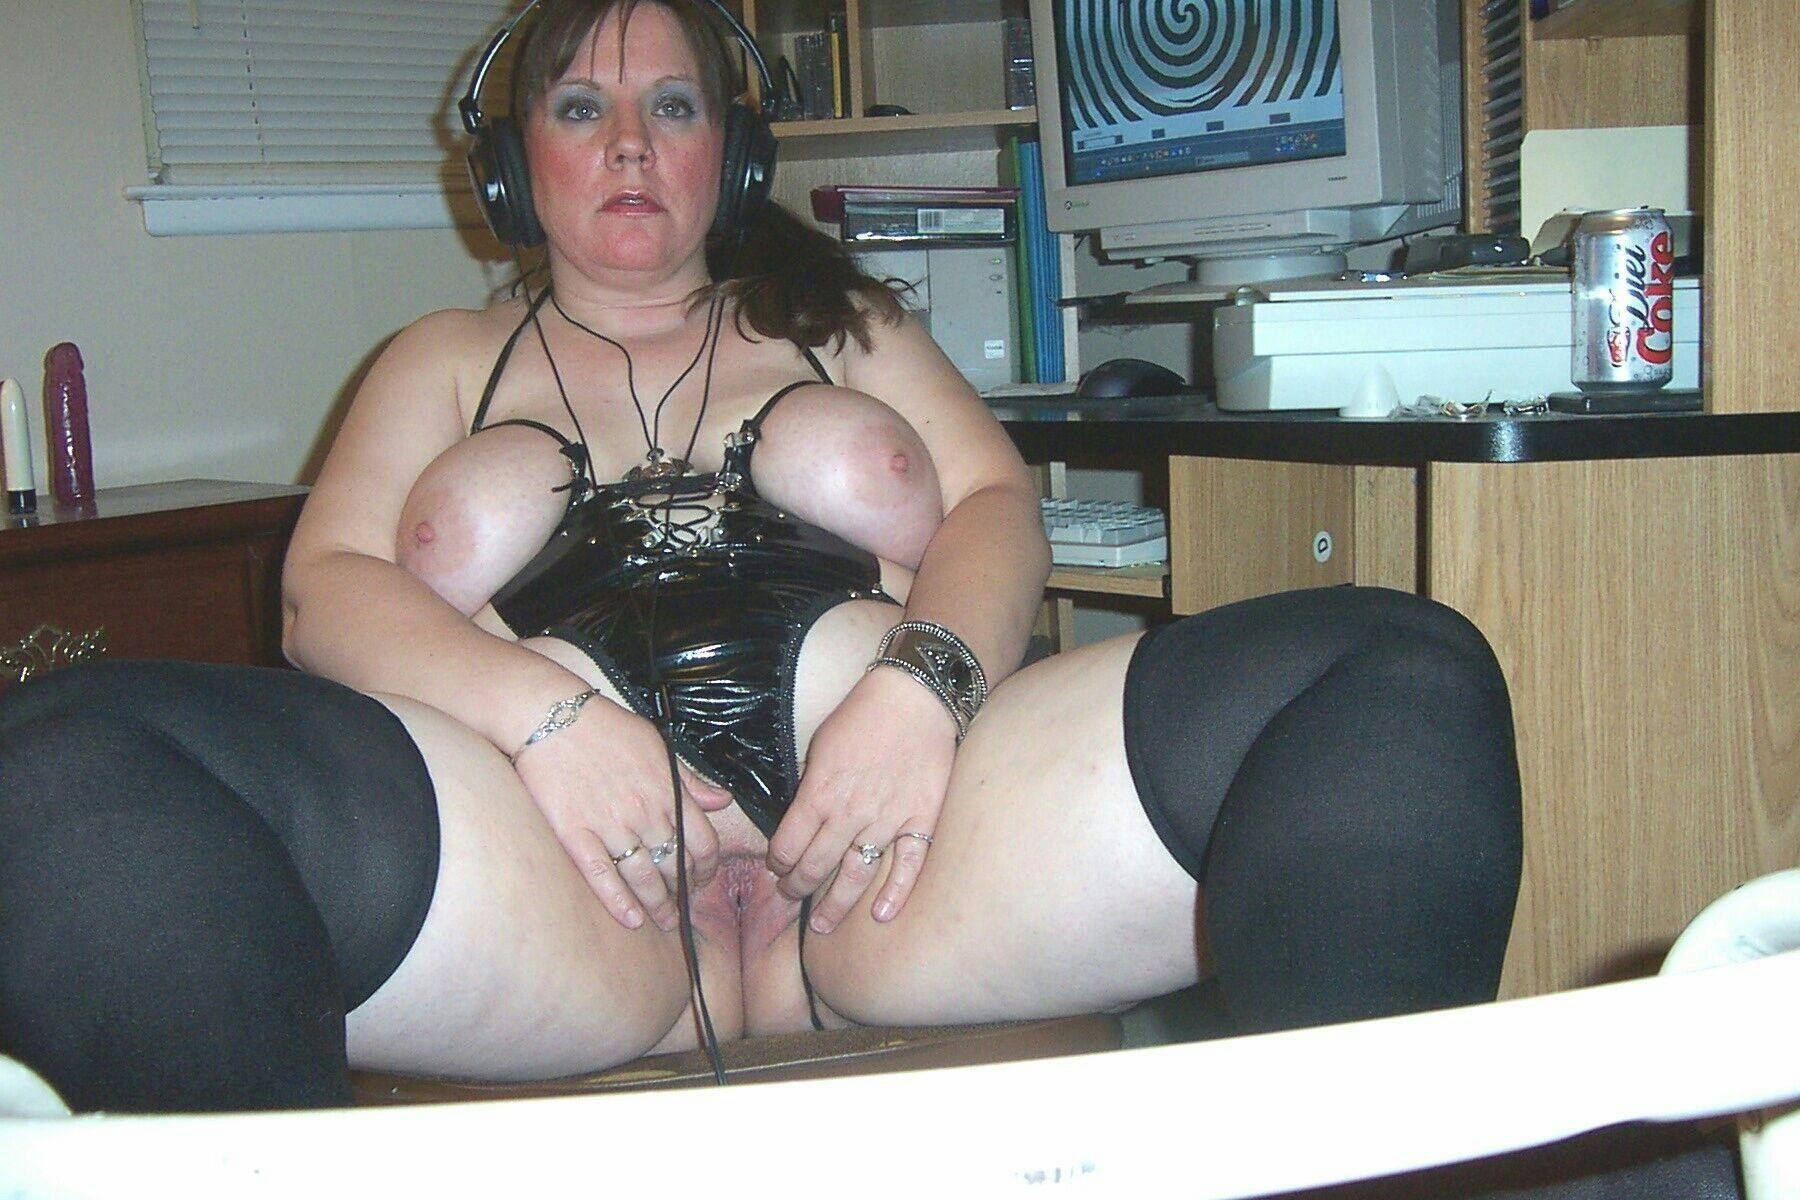 Abortion Fetish Porn sluts whores ass chubby free pic . new sex images.